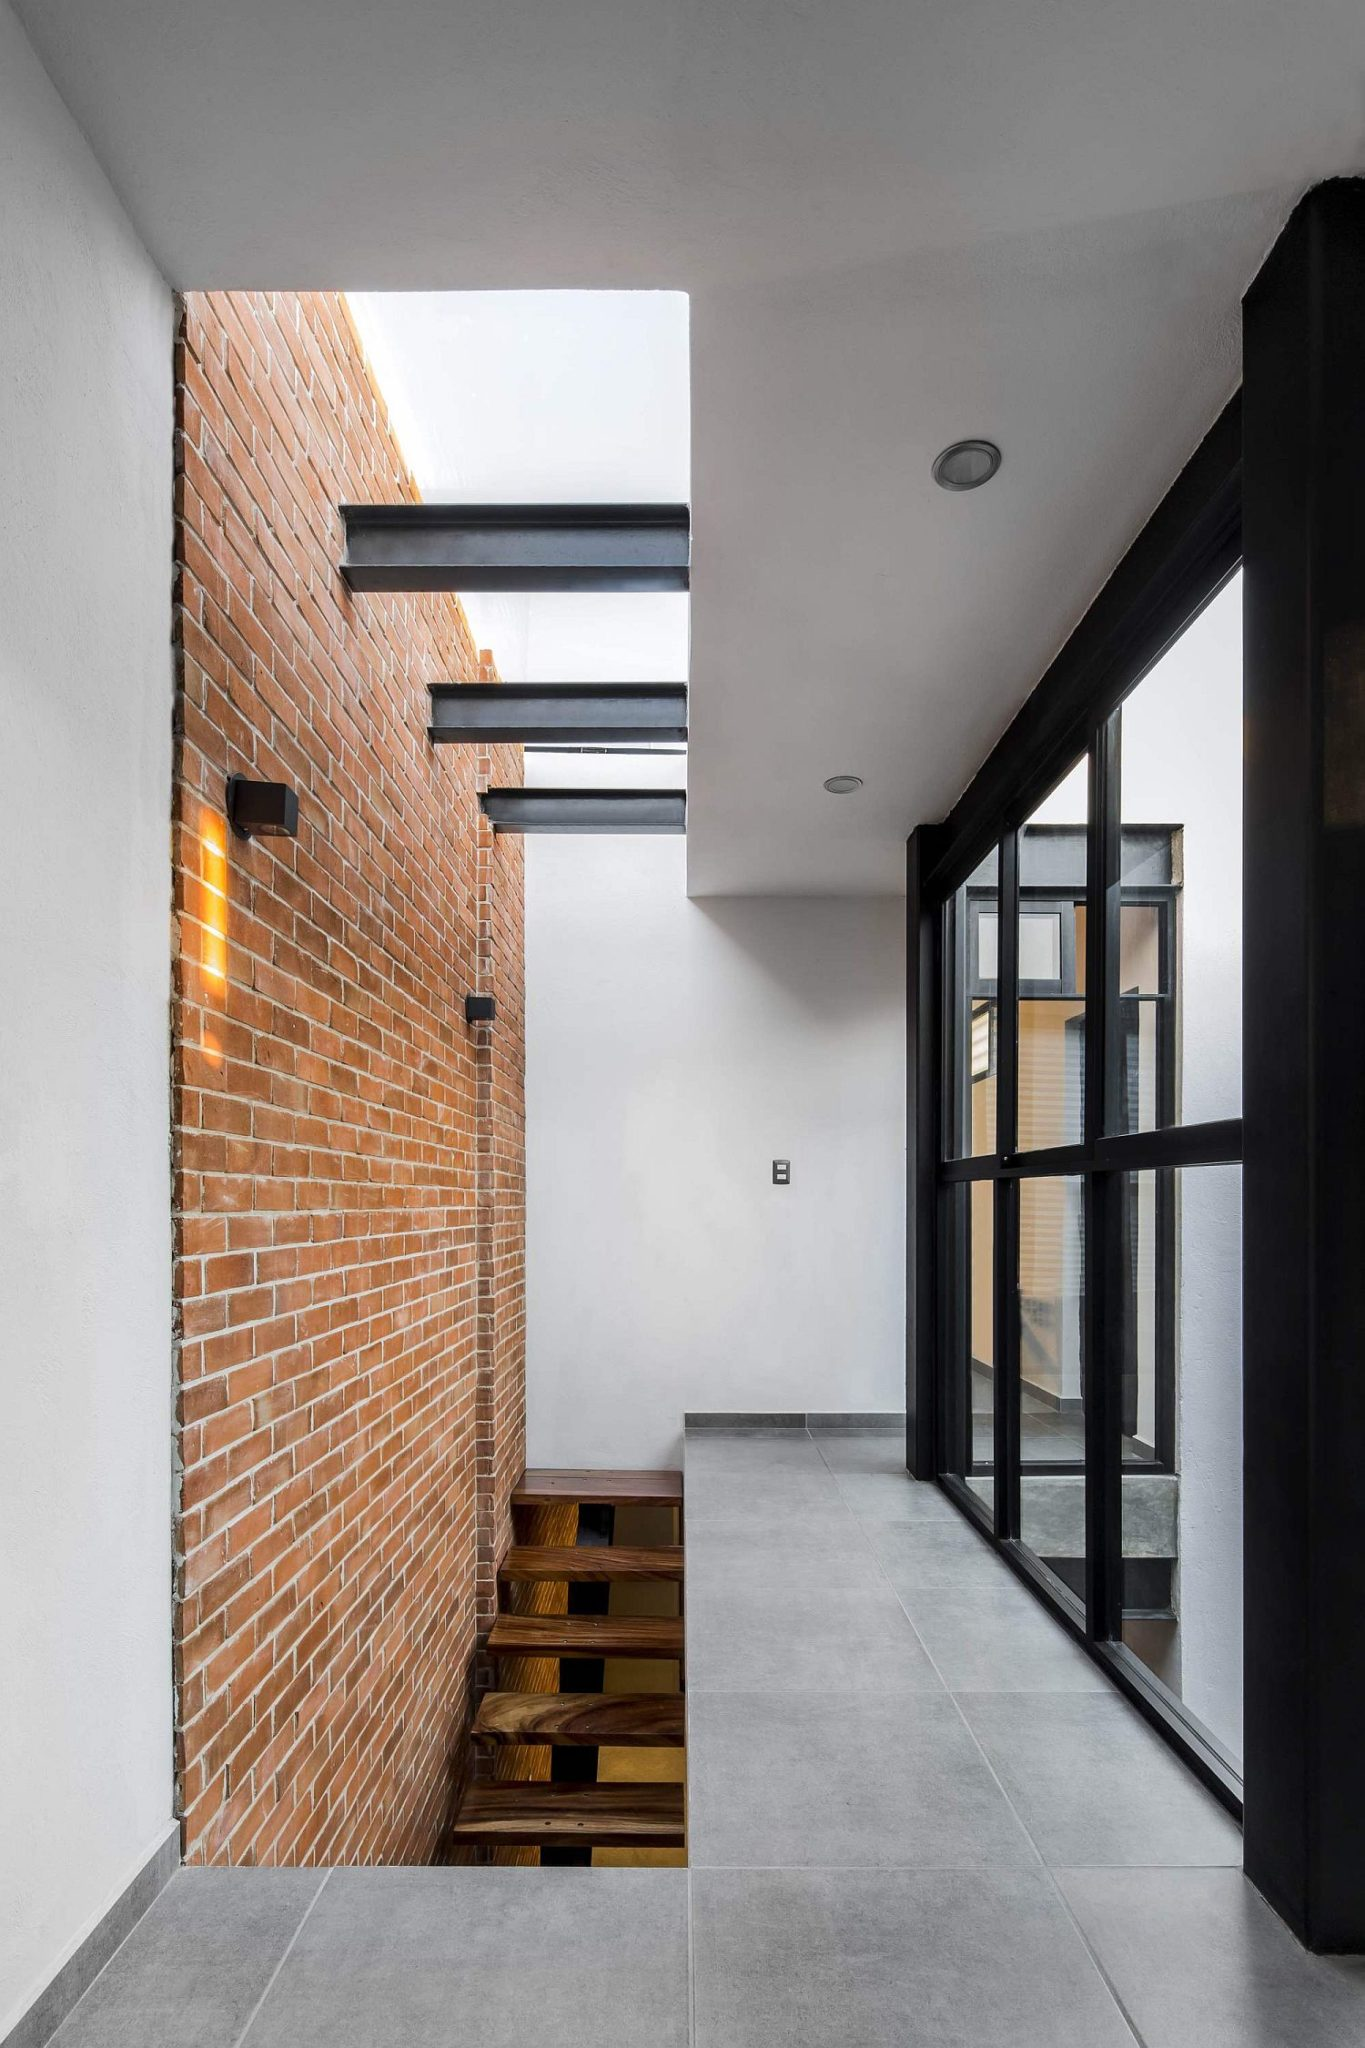 Stairwell and skylight bring natural light into the industrial modern home